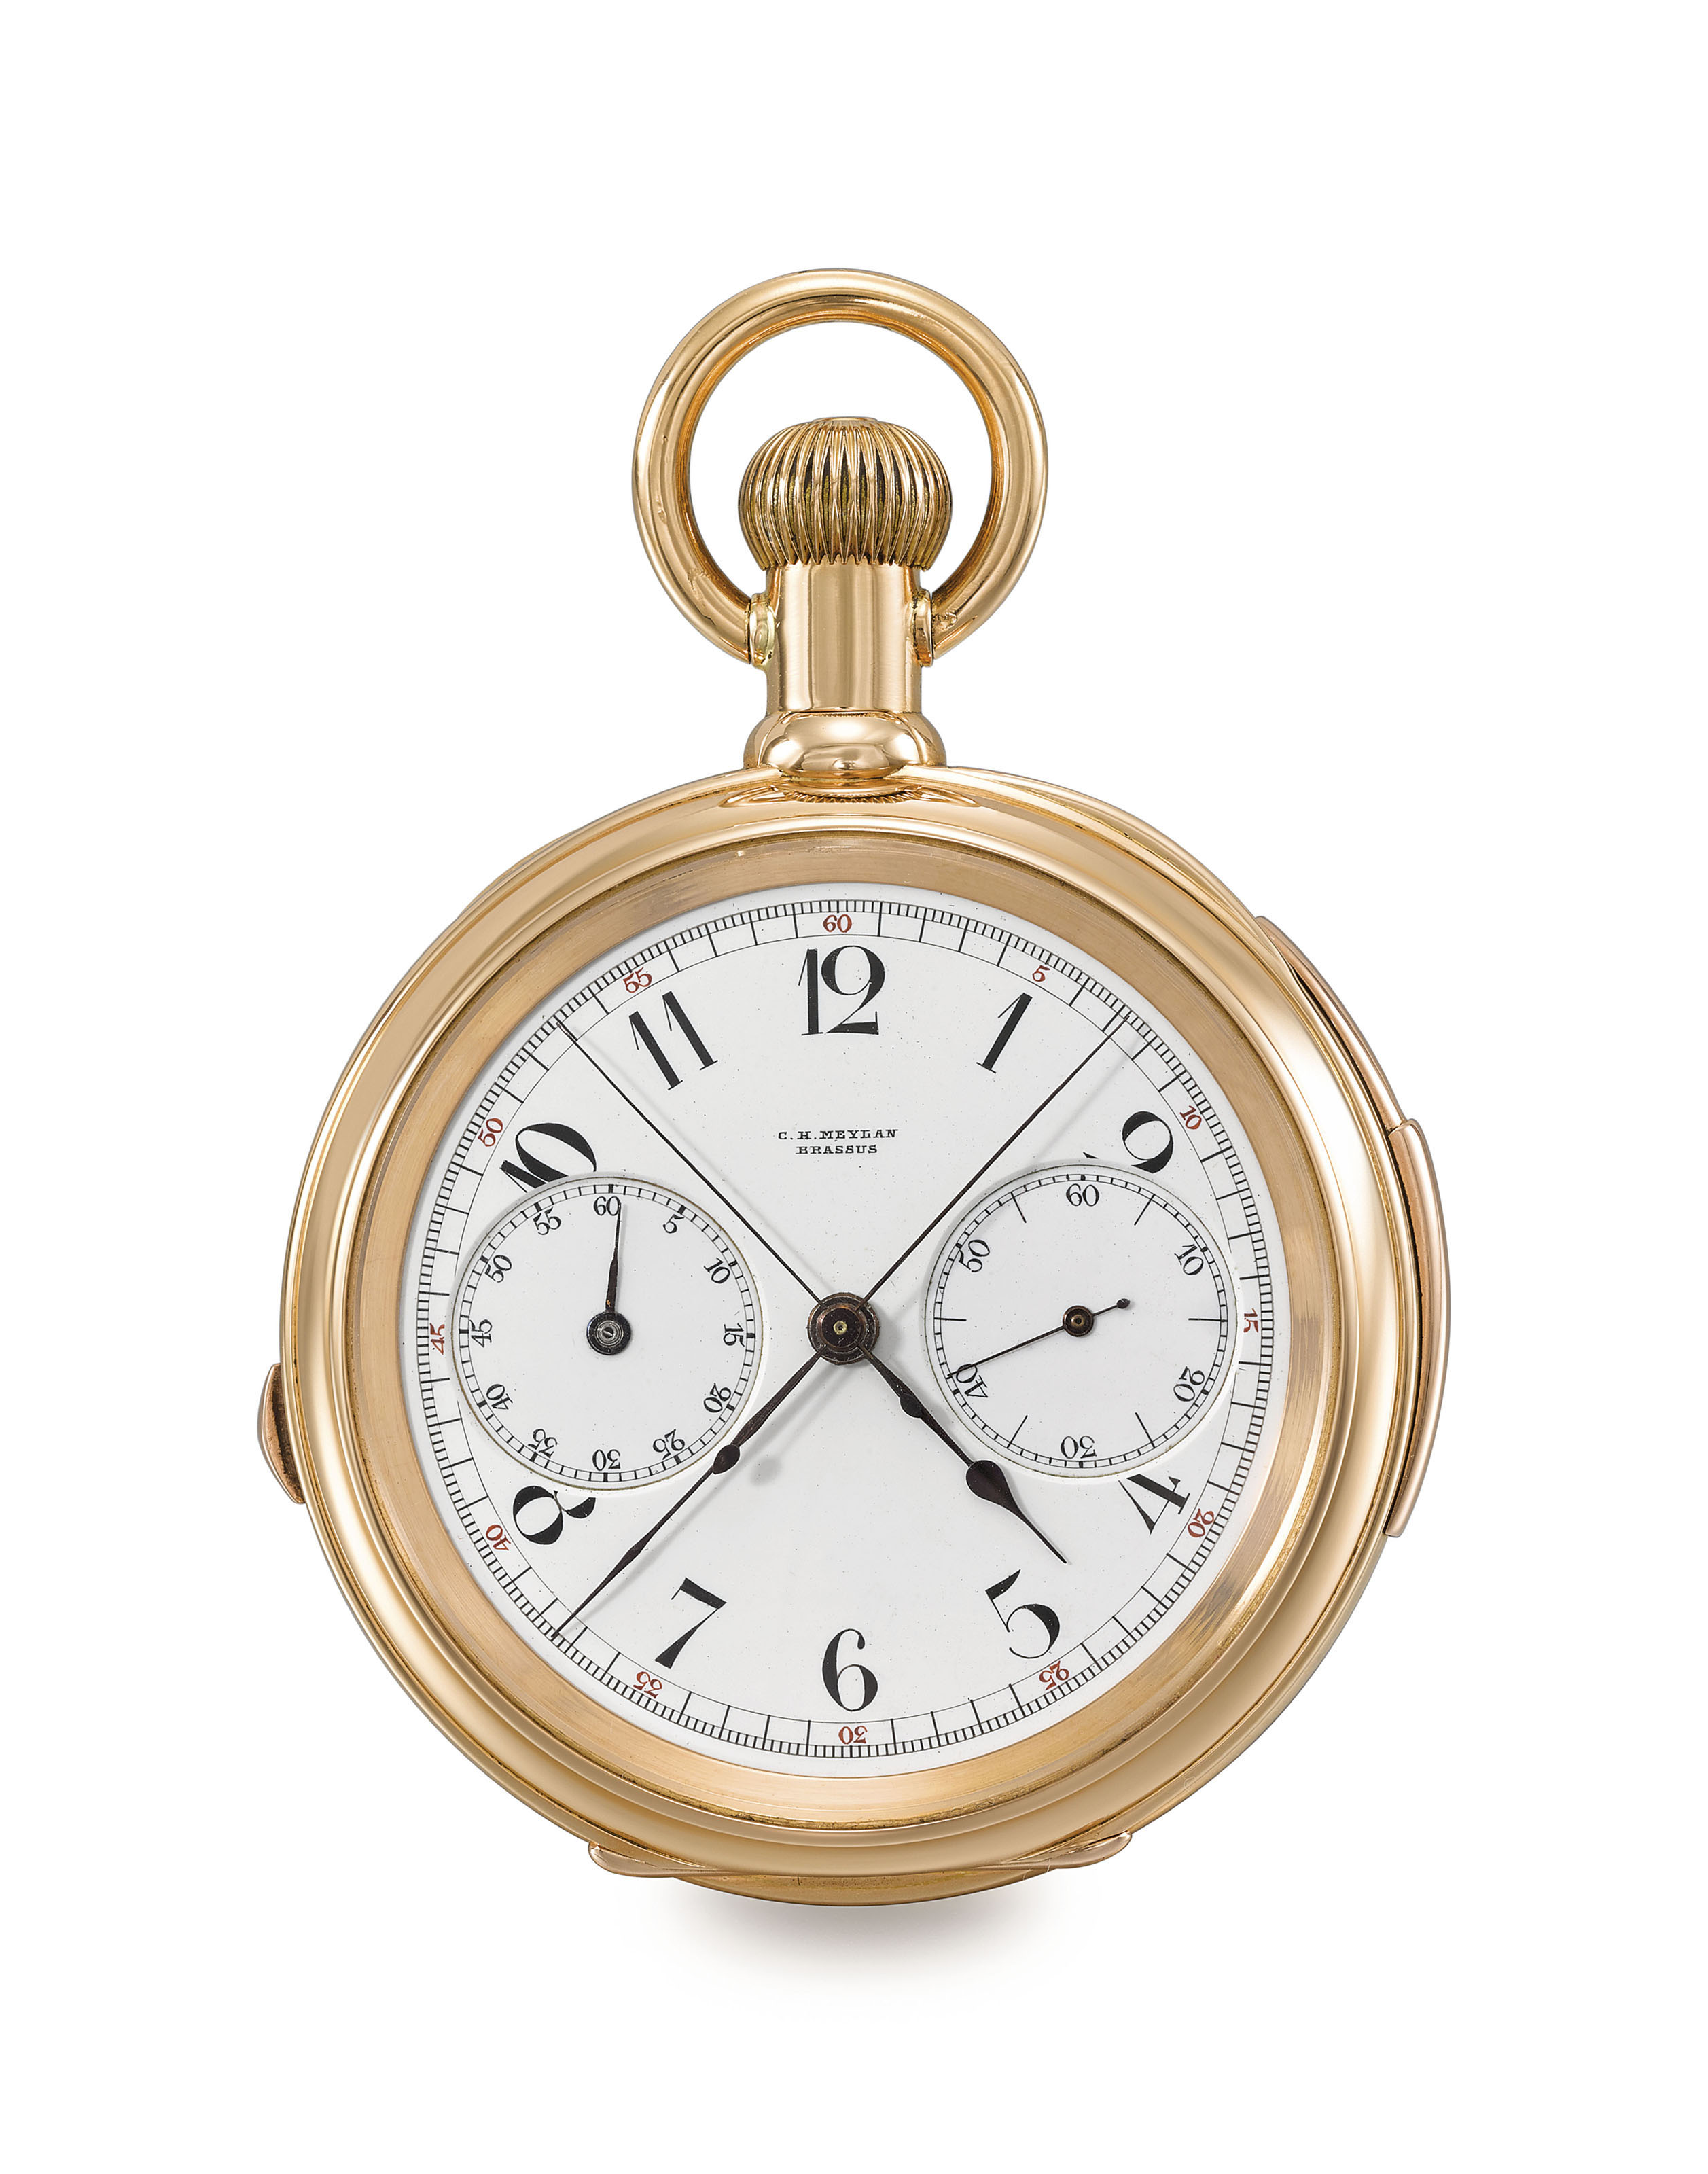 C.H. Meylan. A fine 18K pink gold openface minute repeating split seconds chronograph keyless lever watch with American case